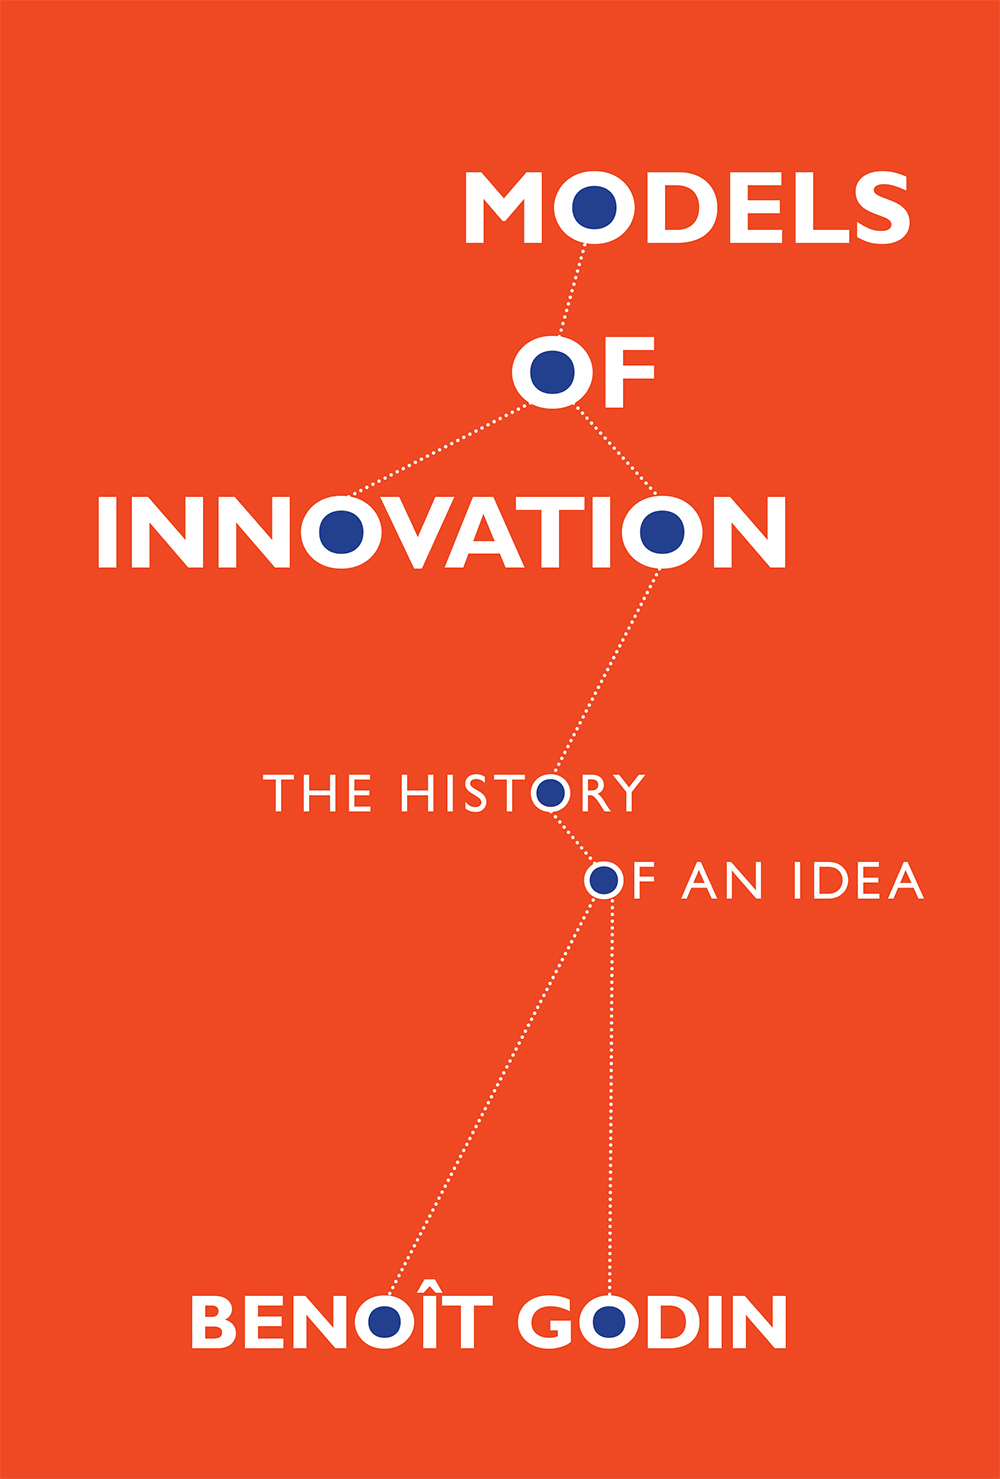 Models of Innovation The History of an Idea By Benoît Godin